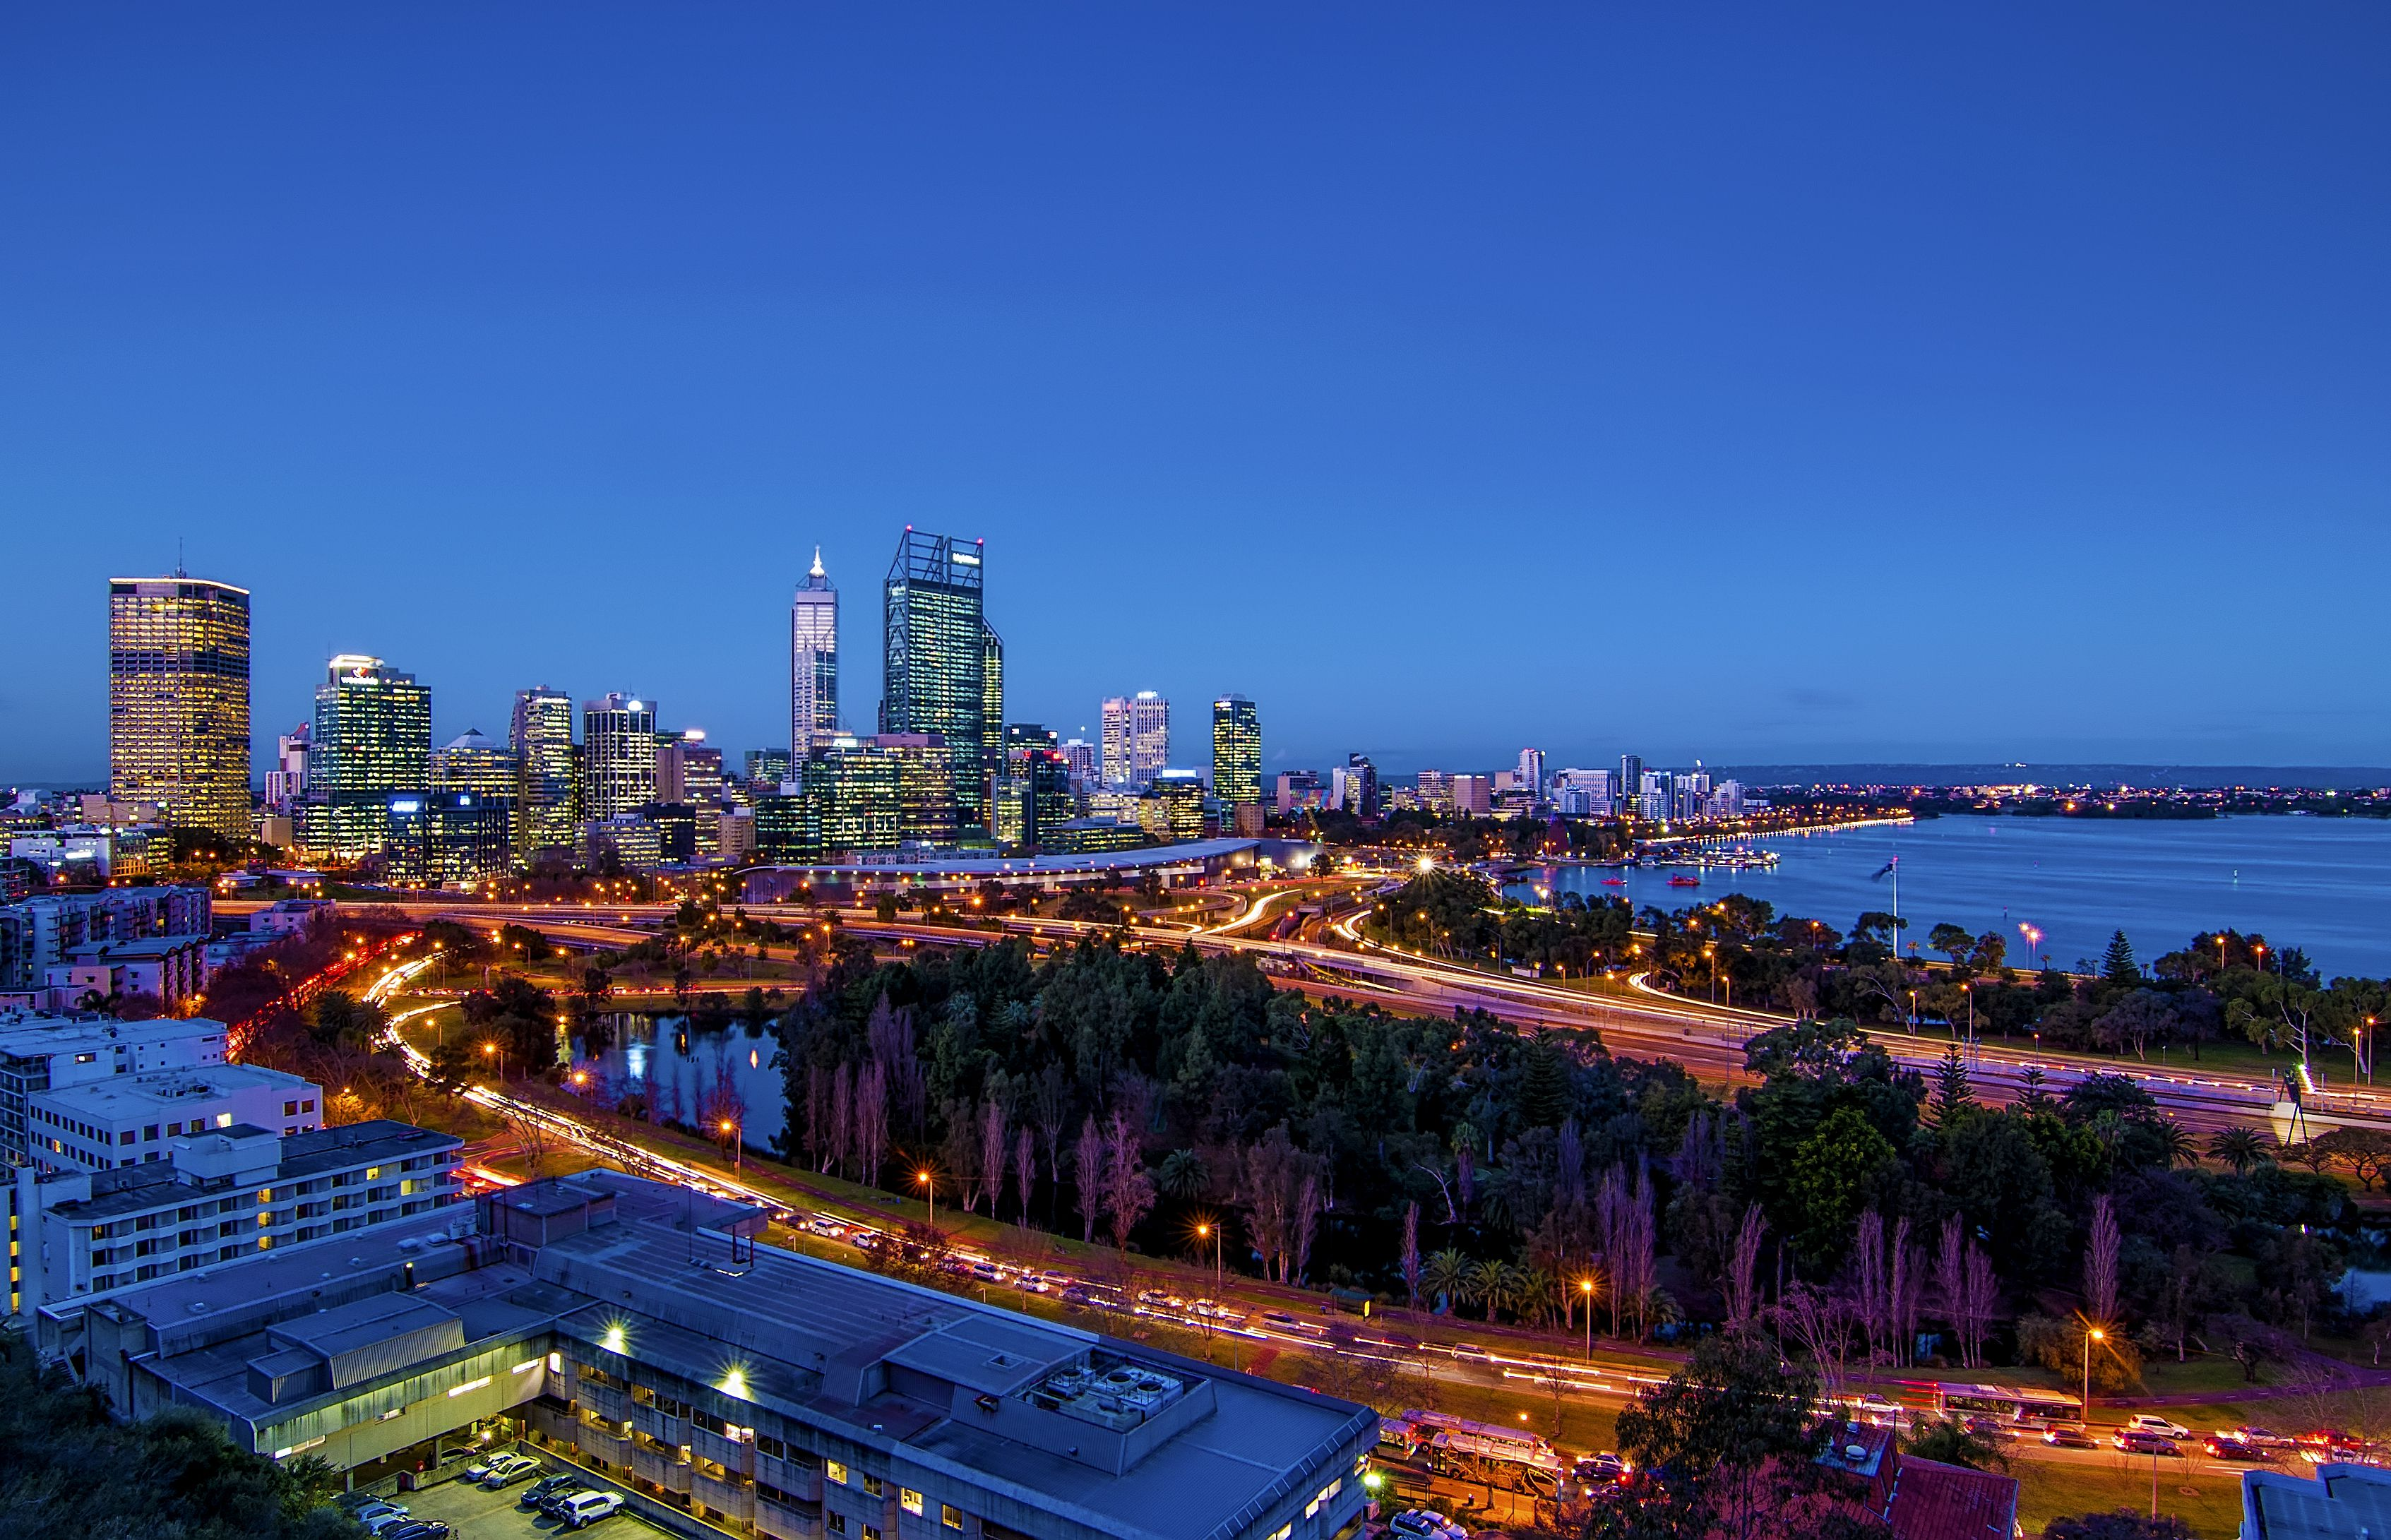 Nightlife in Perth: Best Bars, Clubs, & More